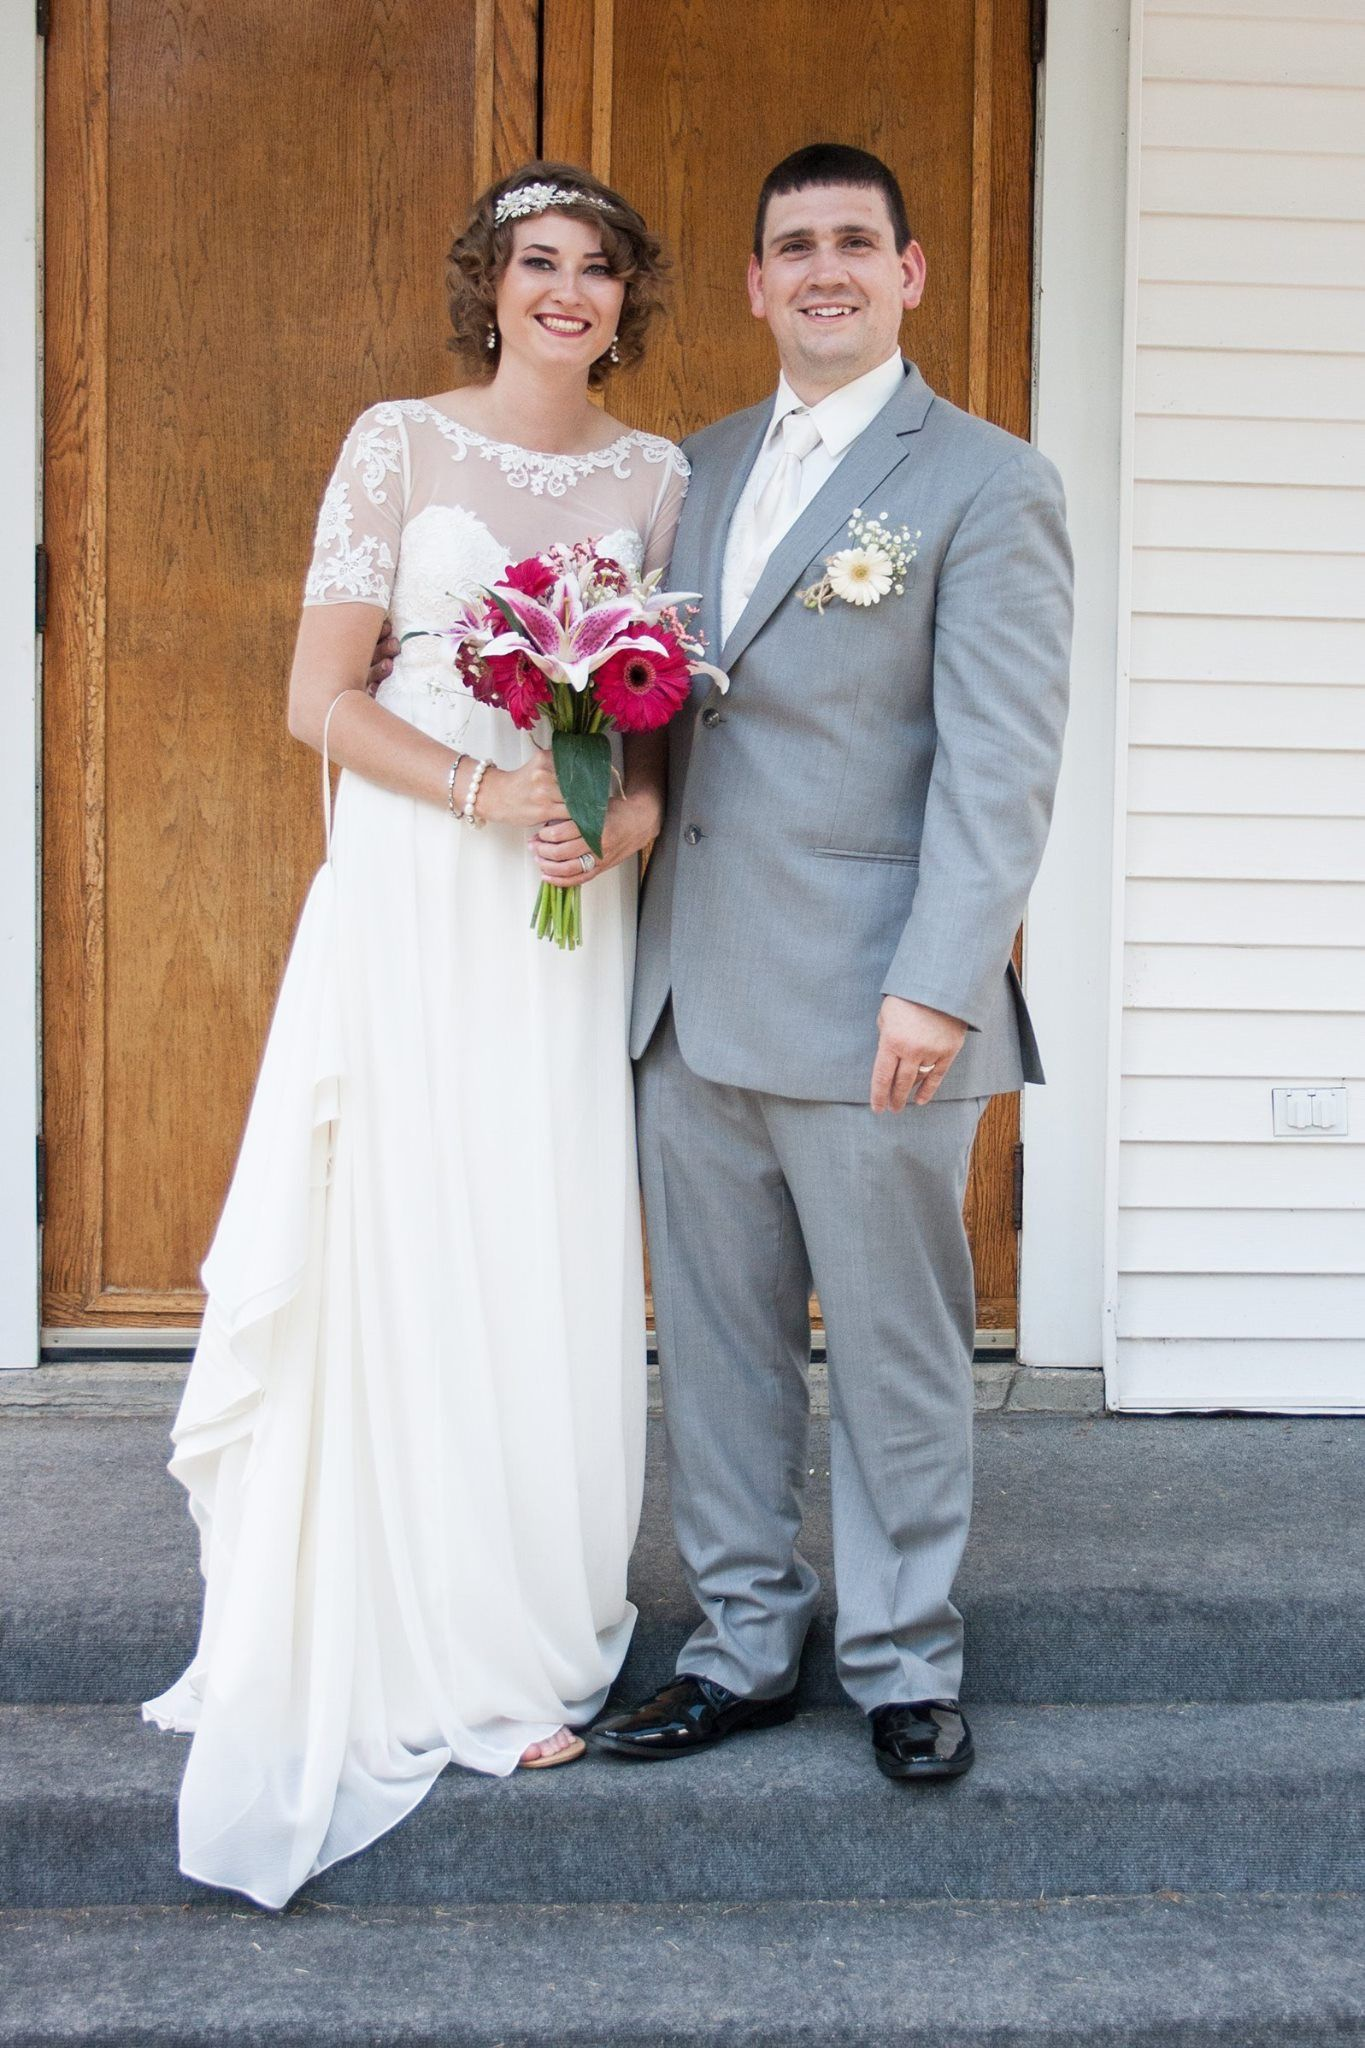 Cute Church Wedding Photo Of Bride And Groom Vintage Style